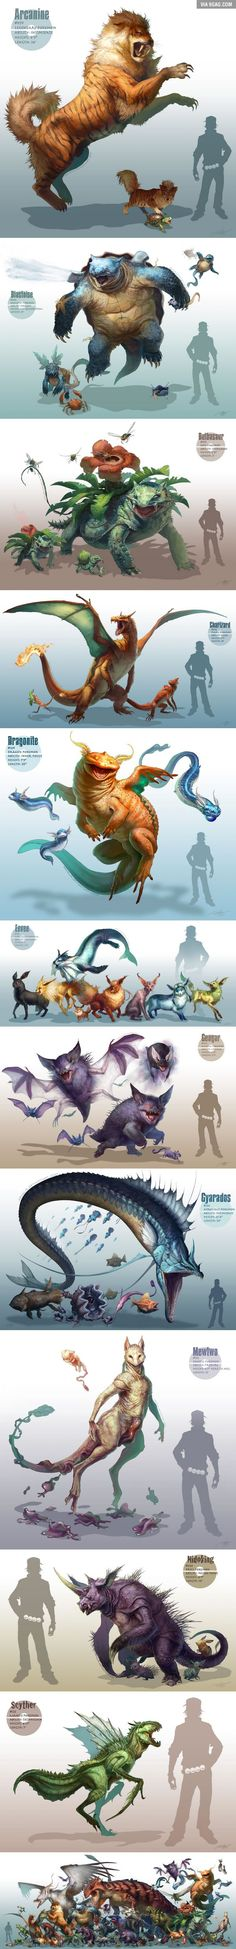 Realistic Pokemon the only one I think should be a bit different is Archanine cause he looks more like a fox than a wolf. Fan Art Pokemon, Pokemon Go, Pikachu, Pokemon Mewtwo, Bulbasaur, Charizard, Twilight Princess, Realistic Cartoons, Beast